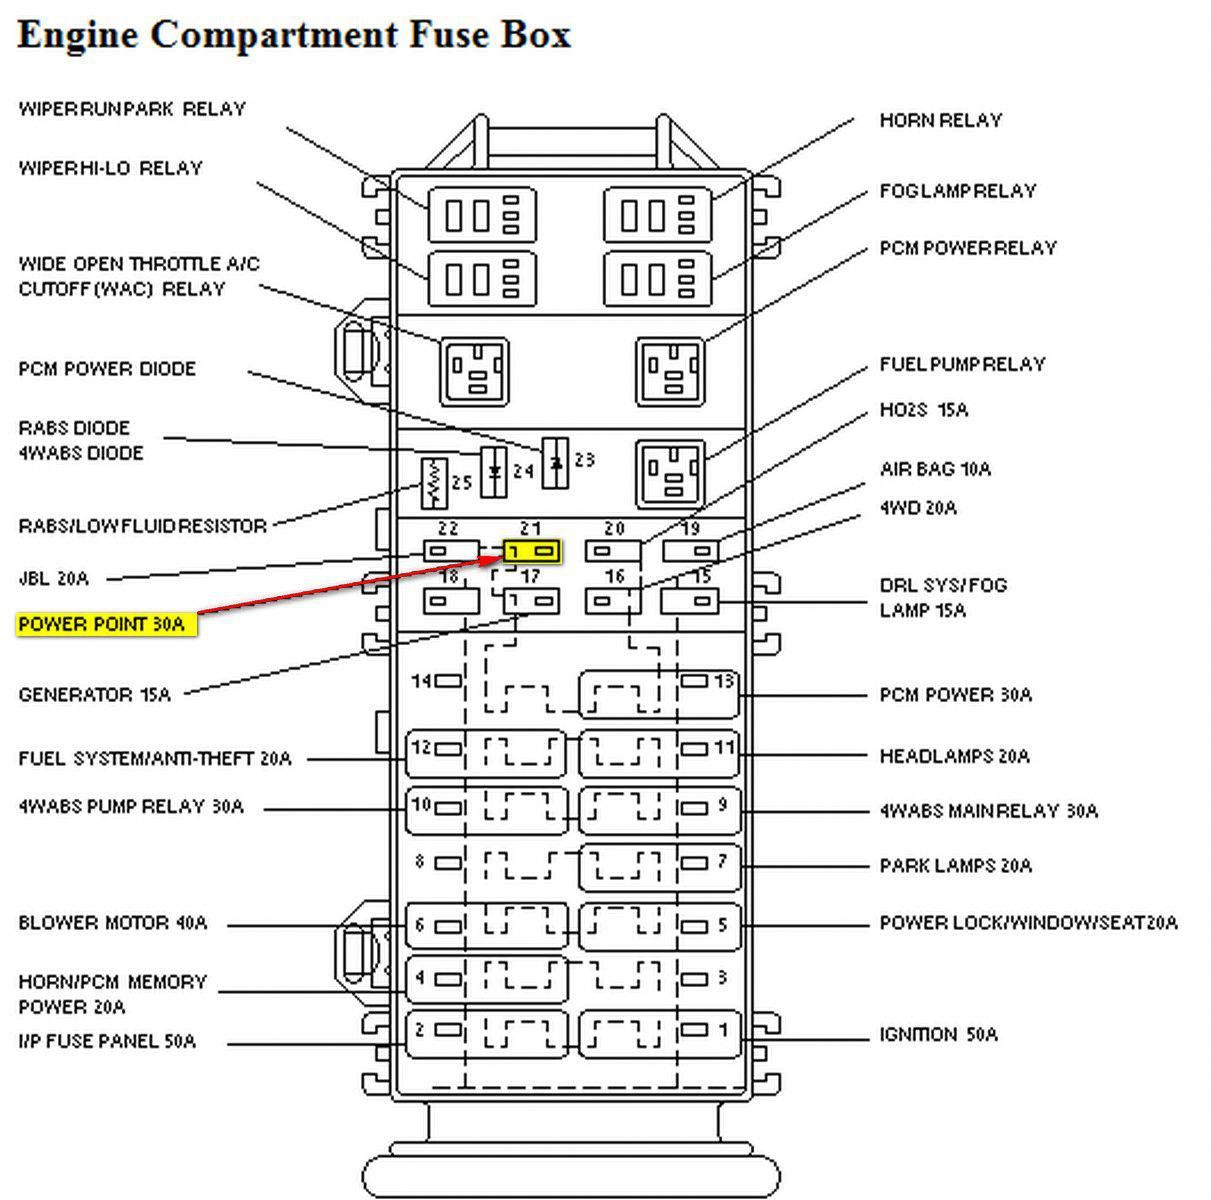 hight resolution of 1997 ford ranger fuse box diagram truck part diagrams 80x30interiordoor